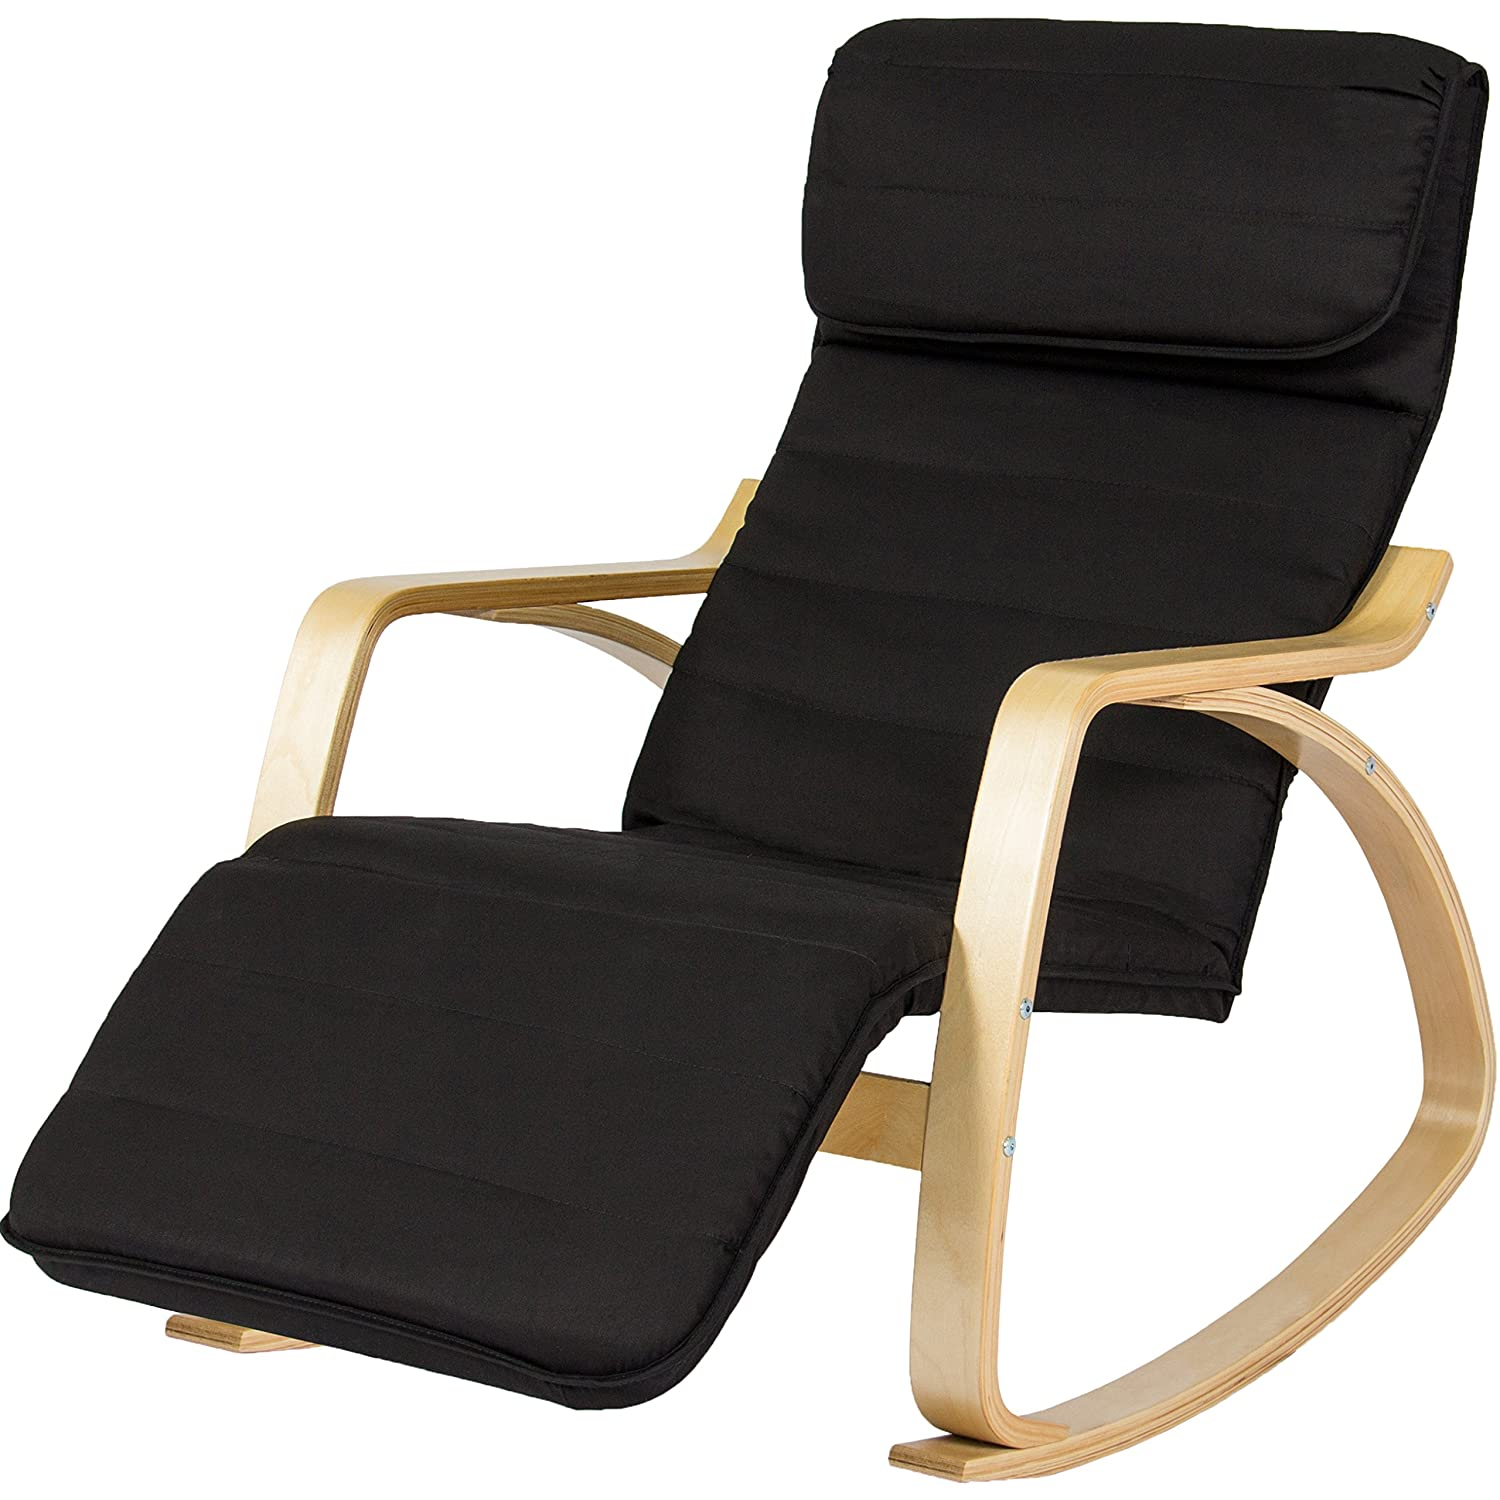 Amazon.com BCP Wood Recliner Rocking Chair W/ Adjustable Foot Rest Comfy Relax Lounge Seat Home u0026 Kitchen  sc 1 st  Amazon.com & Amazon.com: BCP Wood Recliner Rocking Chair W/ Adjustable Foot ... islam-shia.org